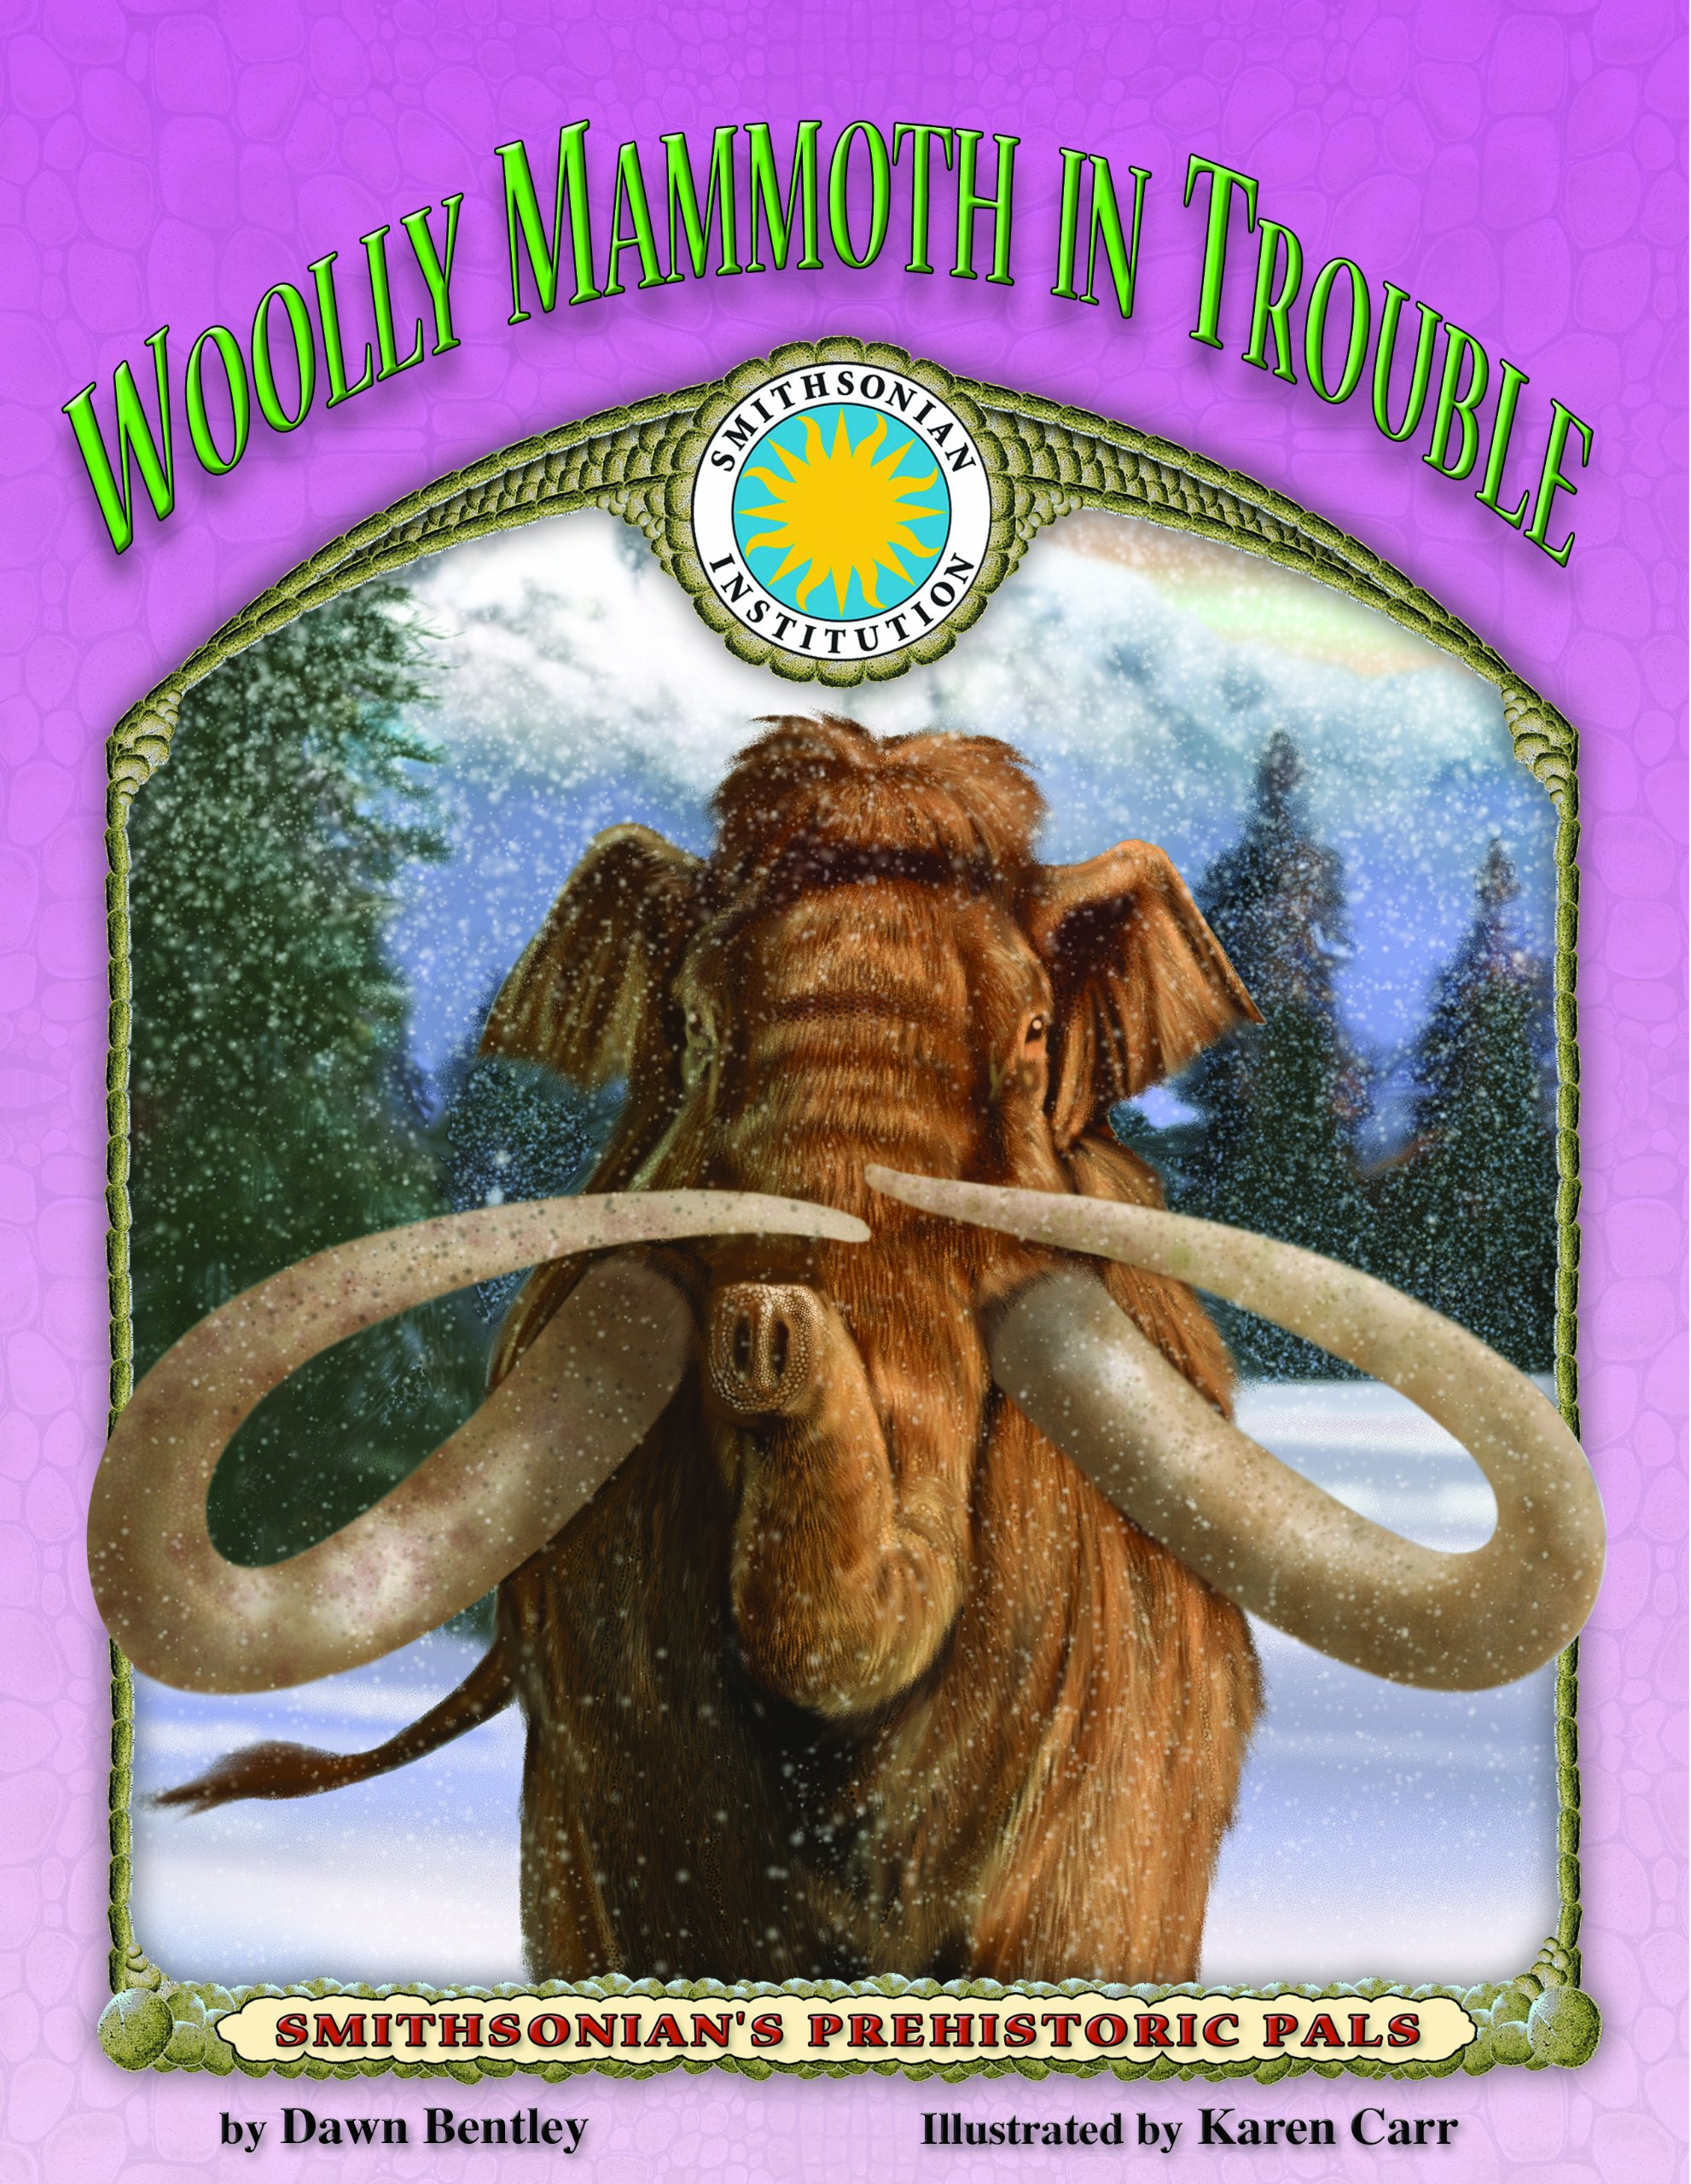 Wooly Mammoth in Trouble - a Smithsonian Prehistoric Pals Book (with Audiobook CD and poster) (SMITHSONIAN'S PREHISTORIC PALS)